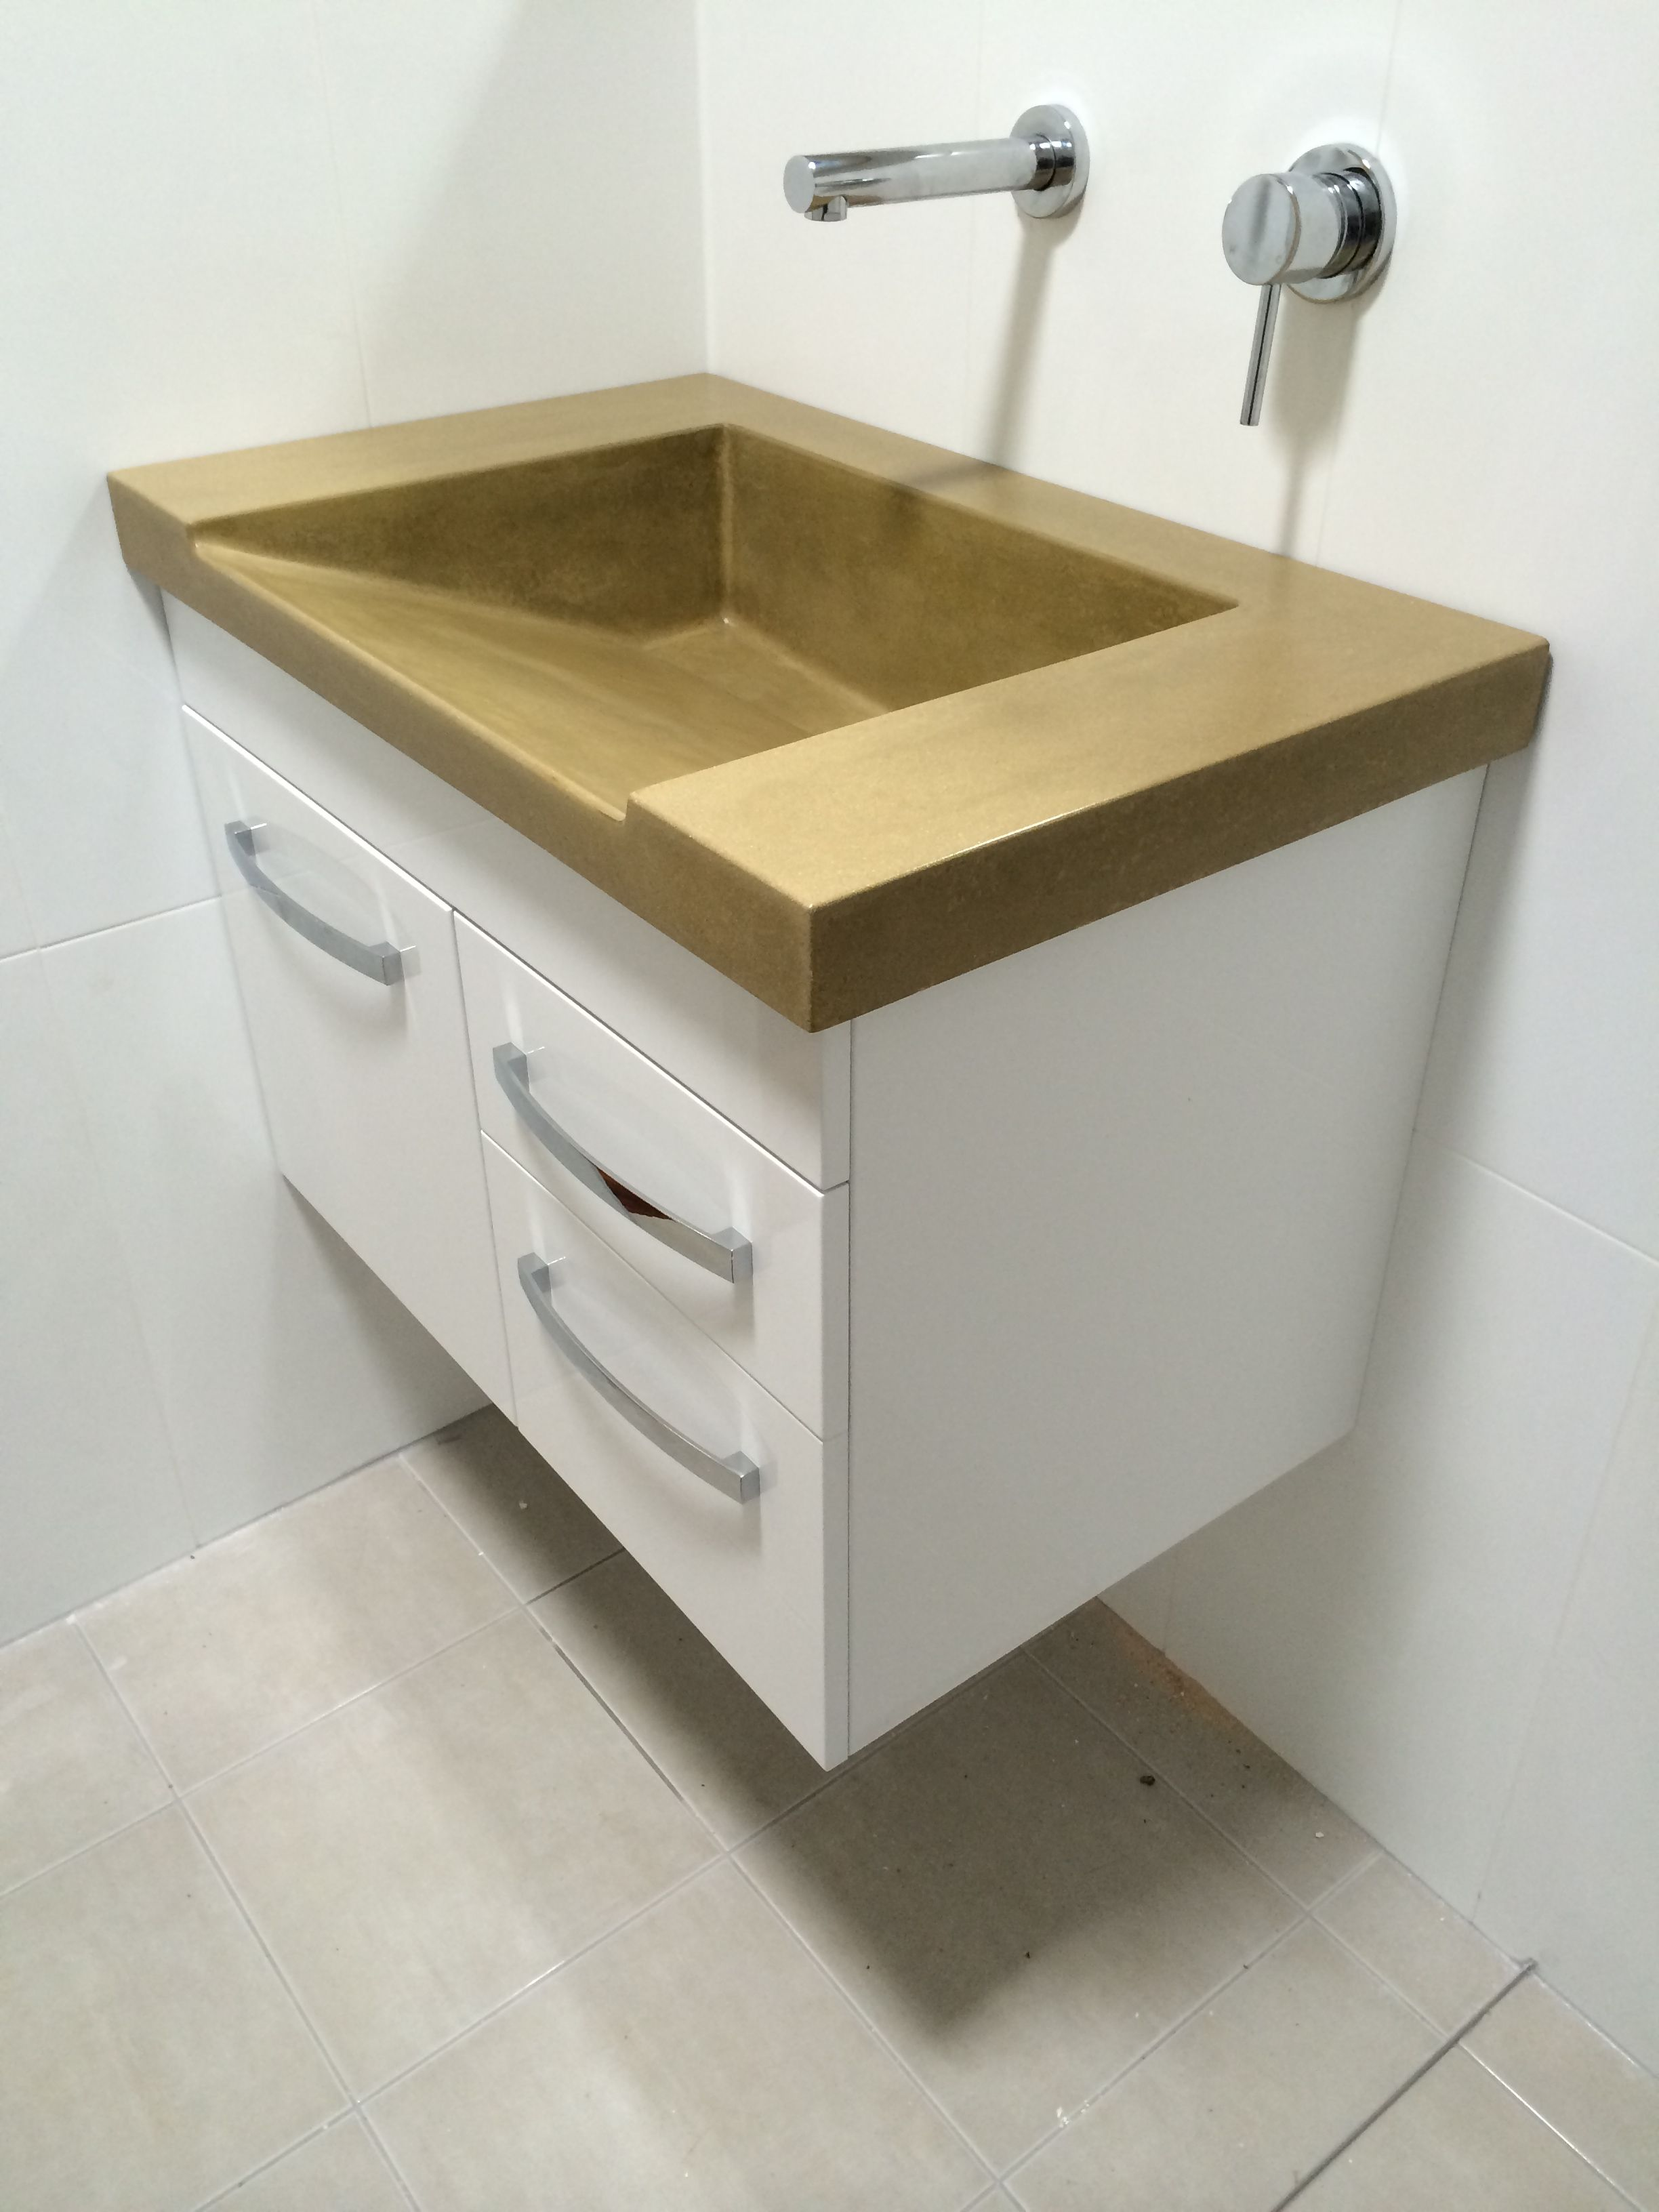 Custom Bathroom Vanity Tops With Sinks custom polished concrete vanity top with ramp sink. a big